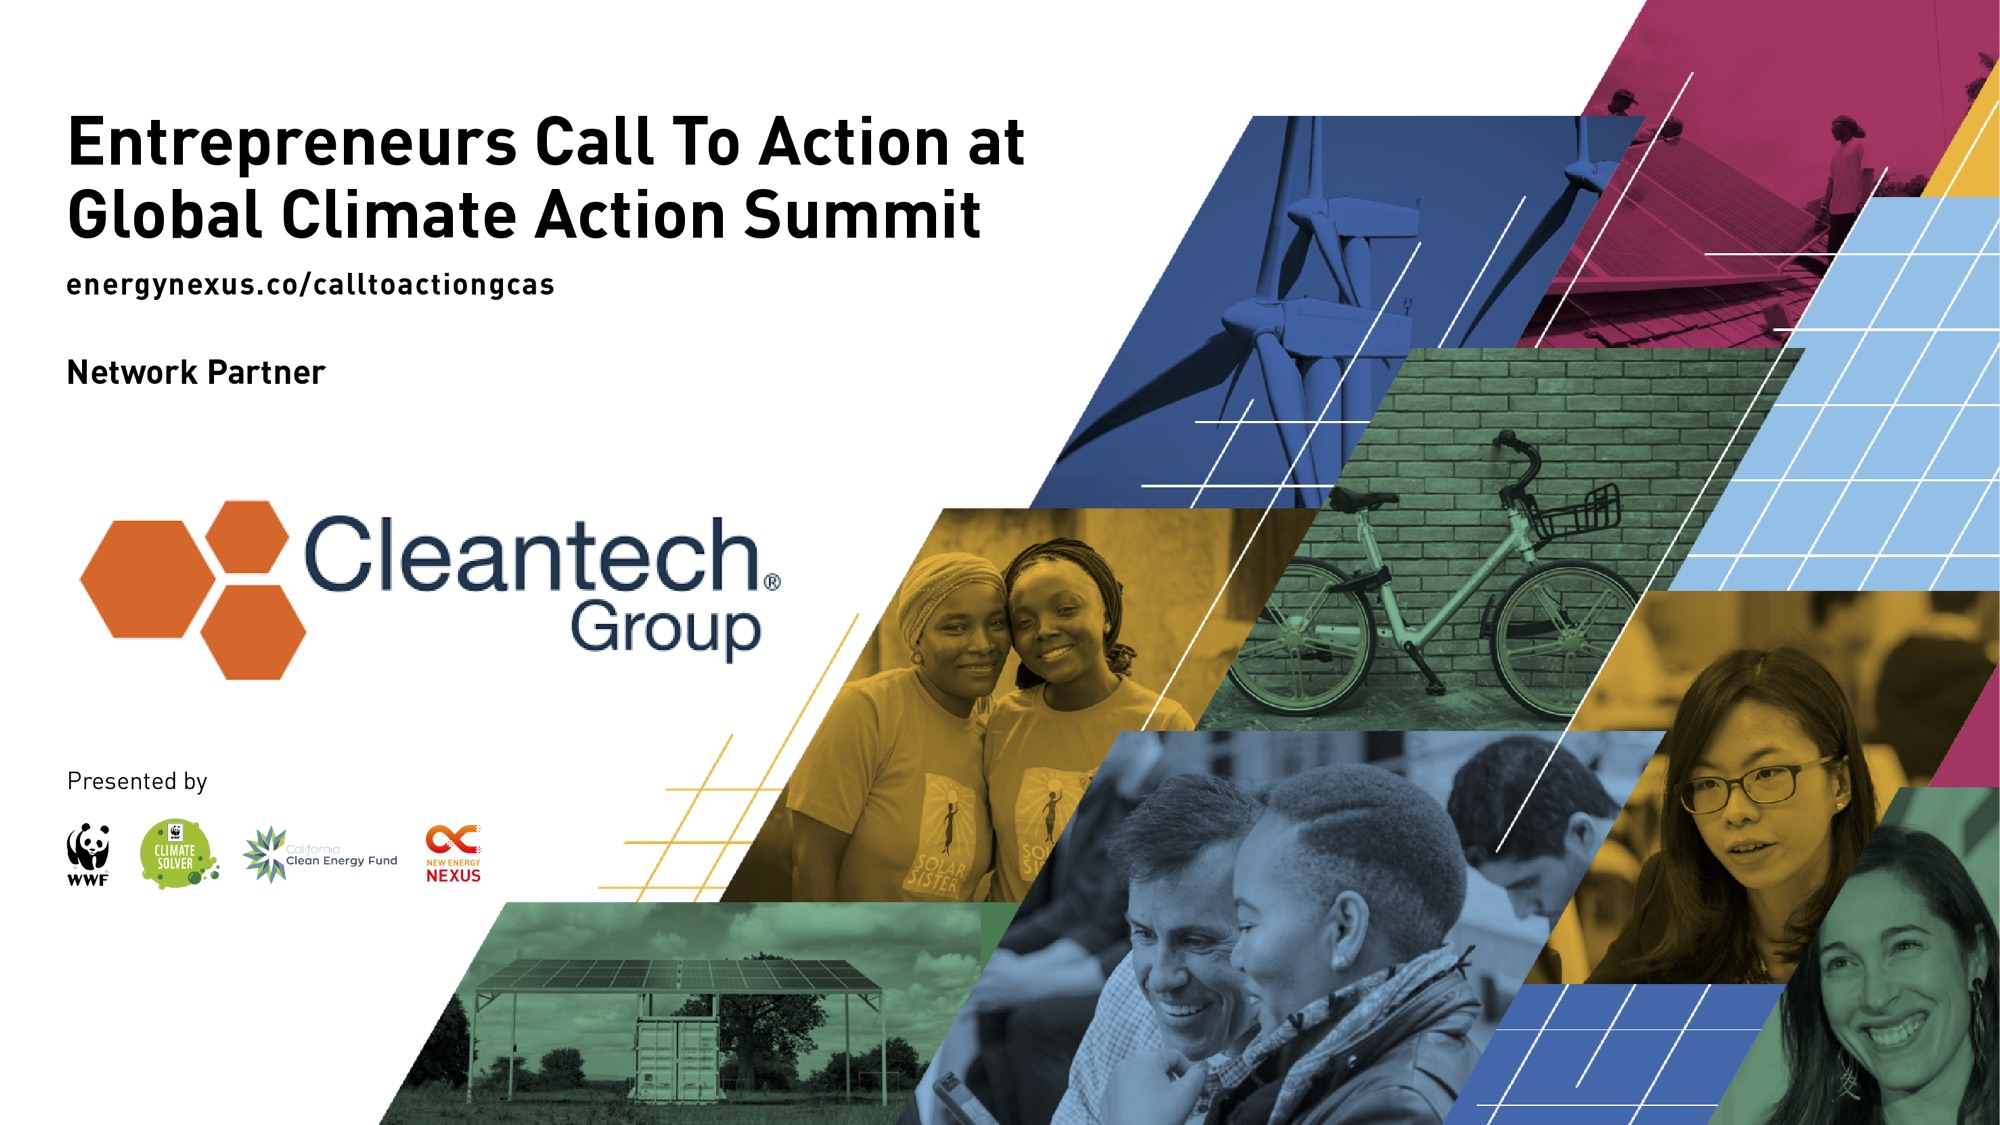 GCAS_Network Partner Banner_Cleantech Group.jpg